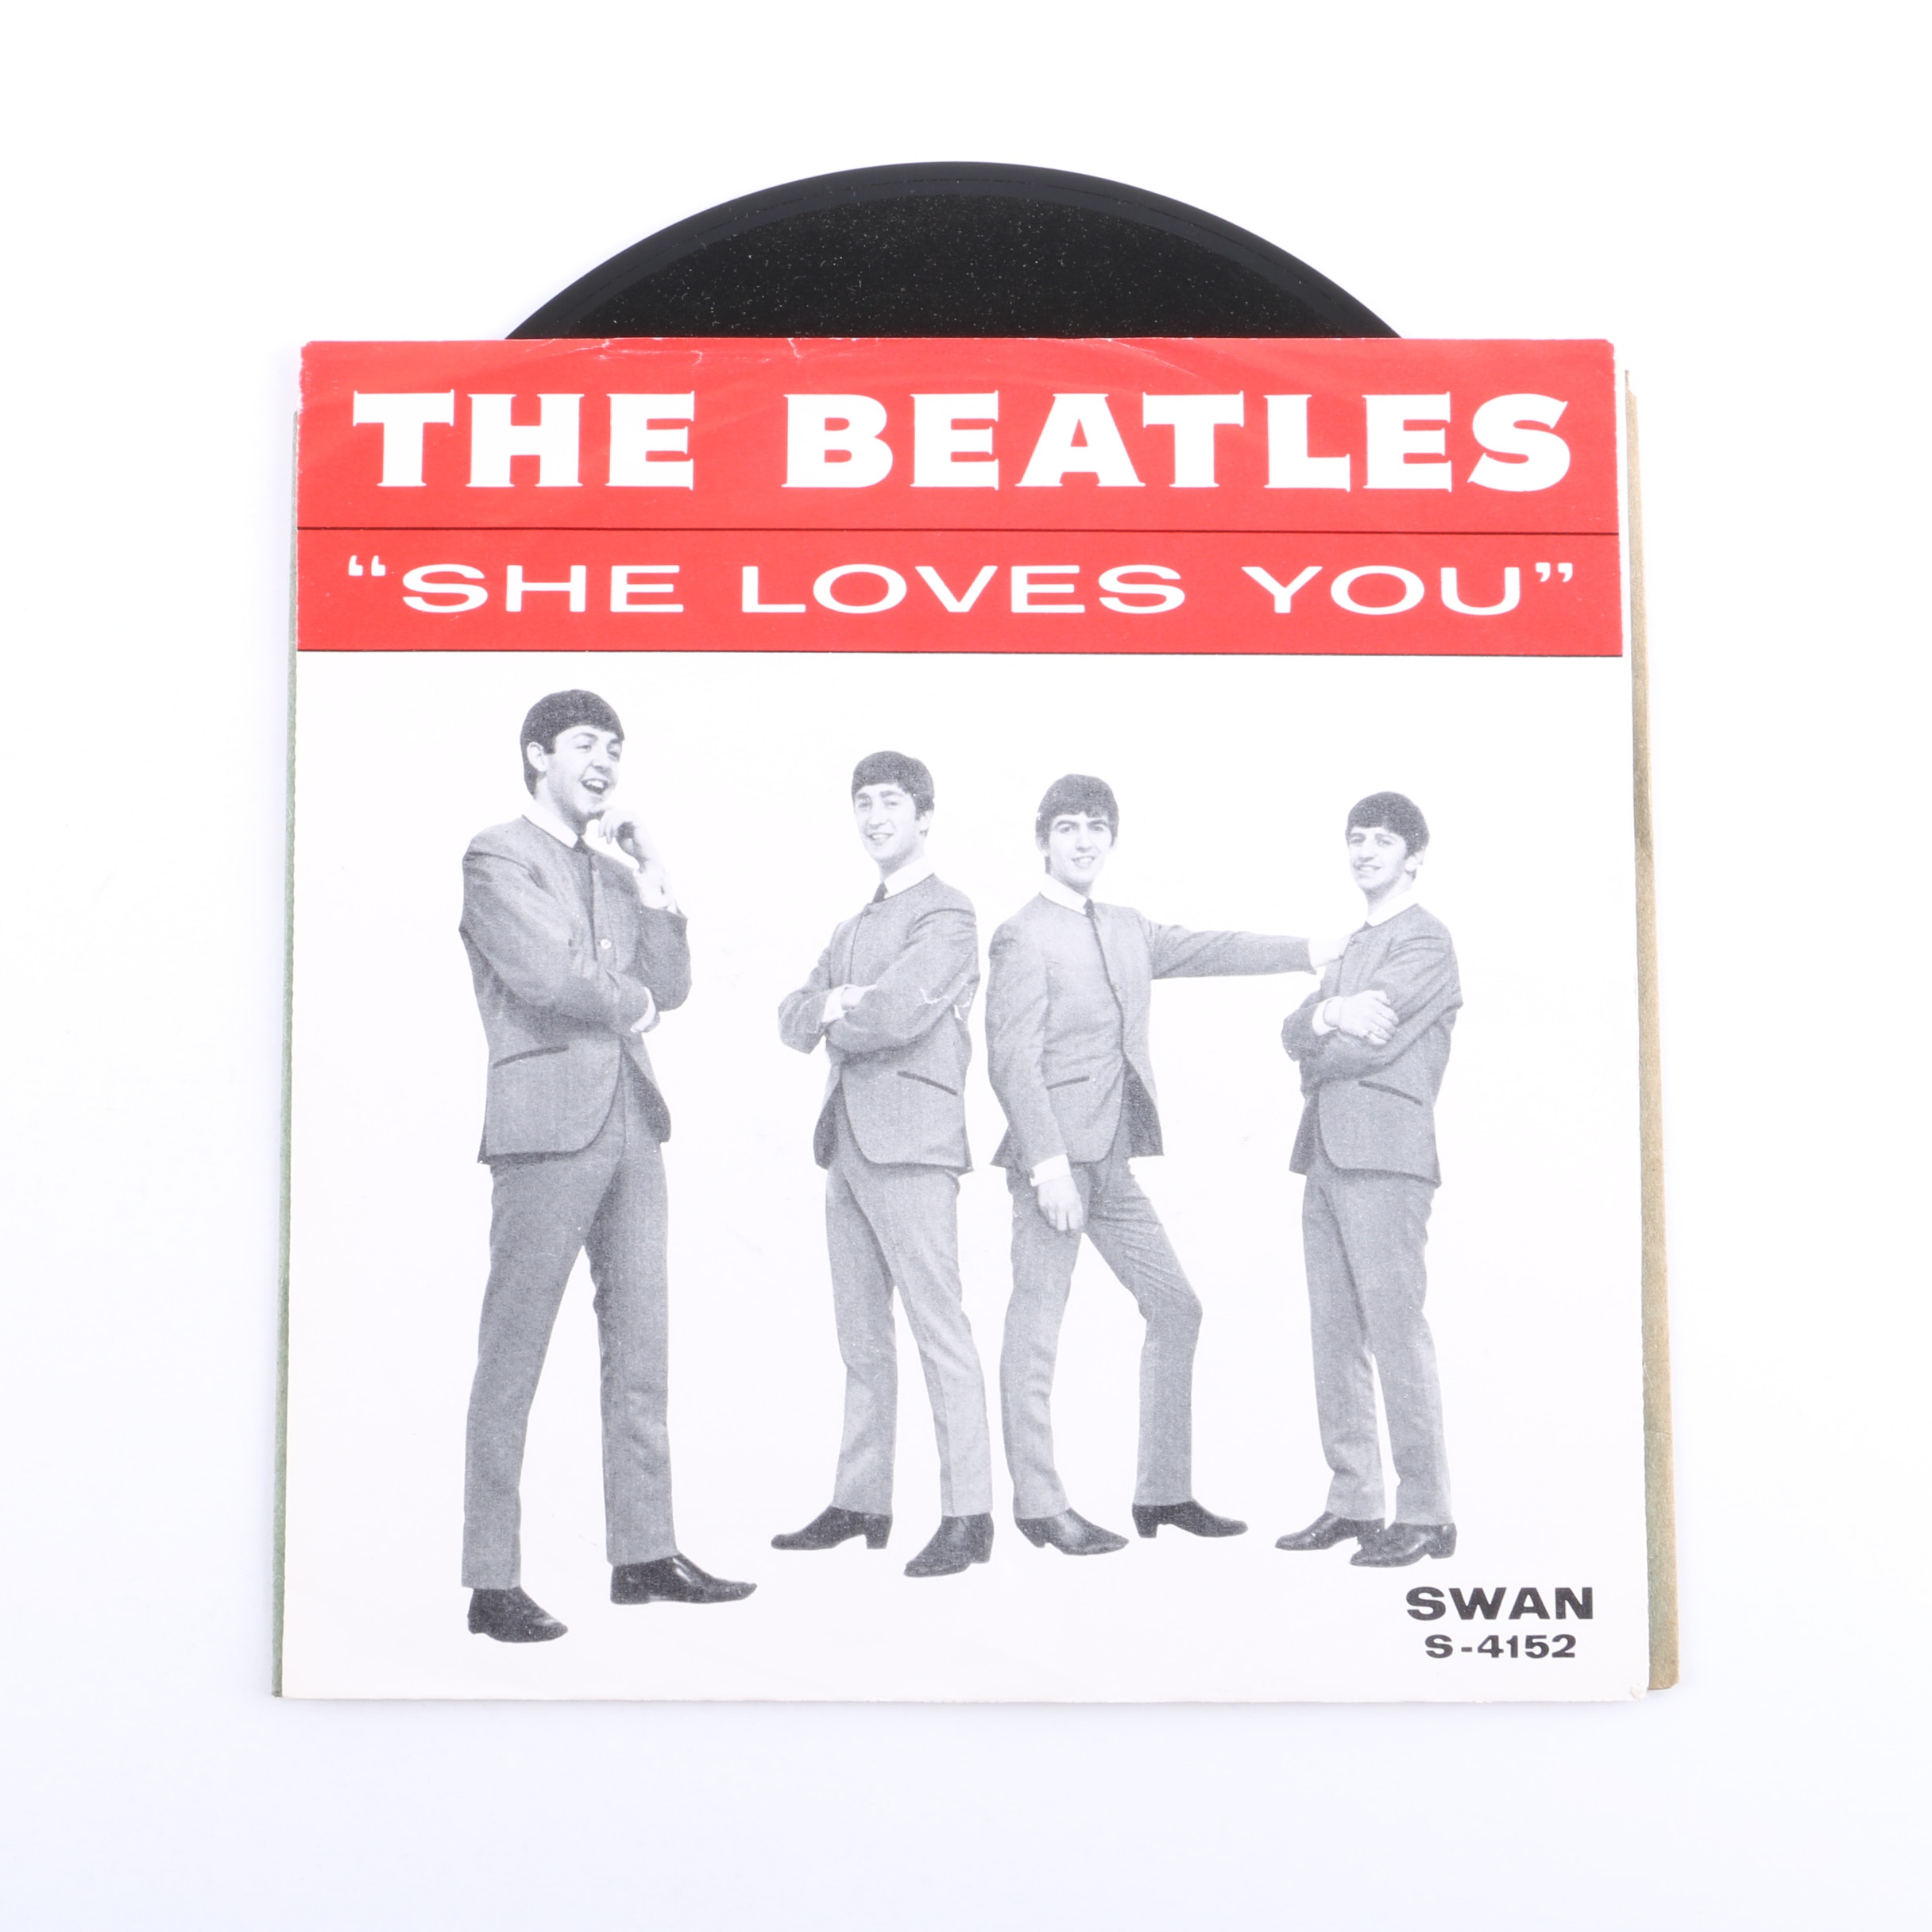 """The Beatles """"She Loves You"""" Original Swan Records 45"""